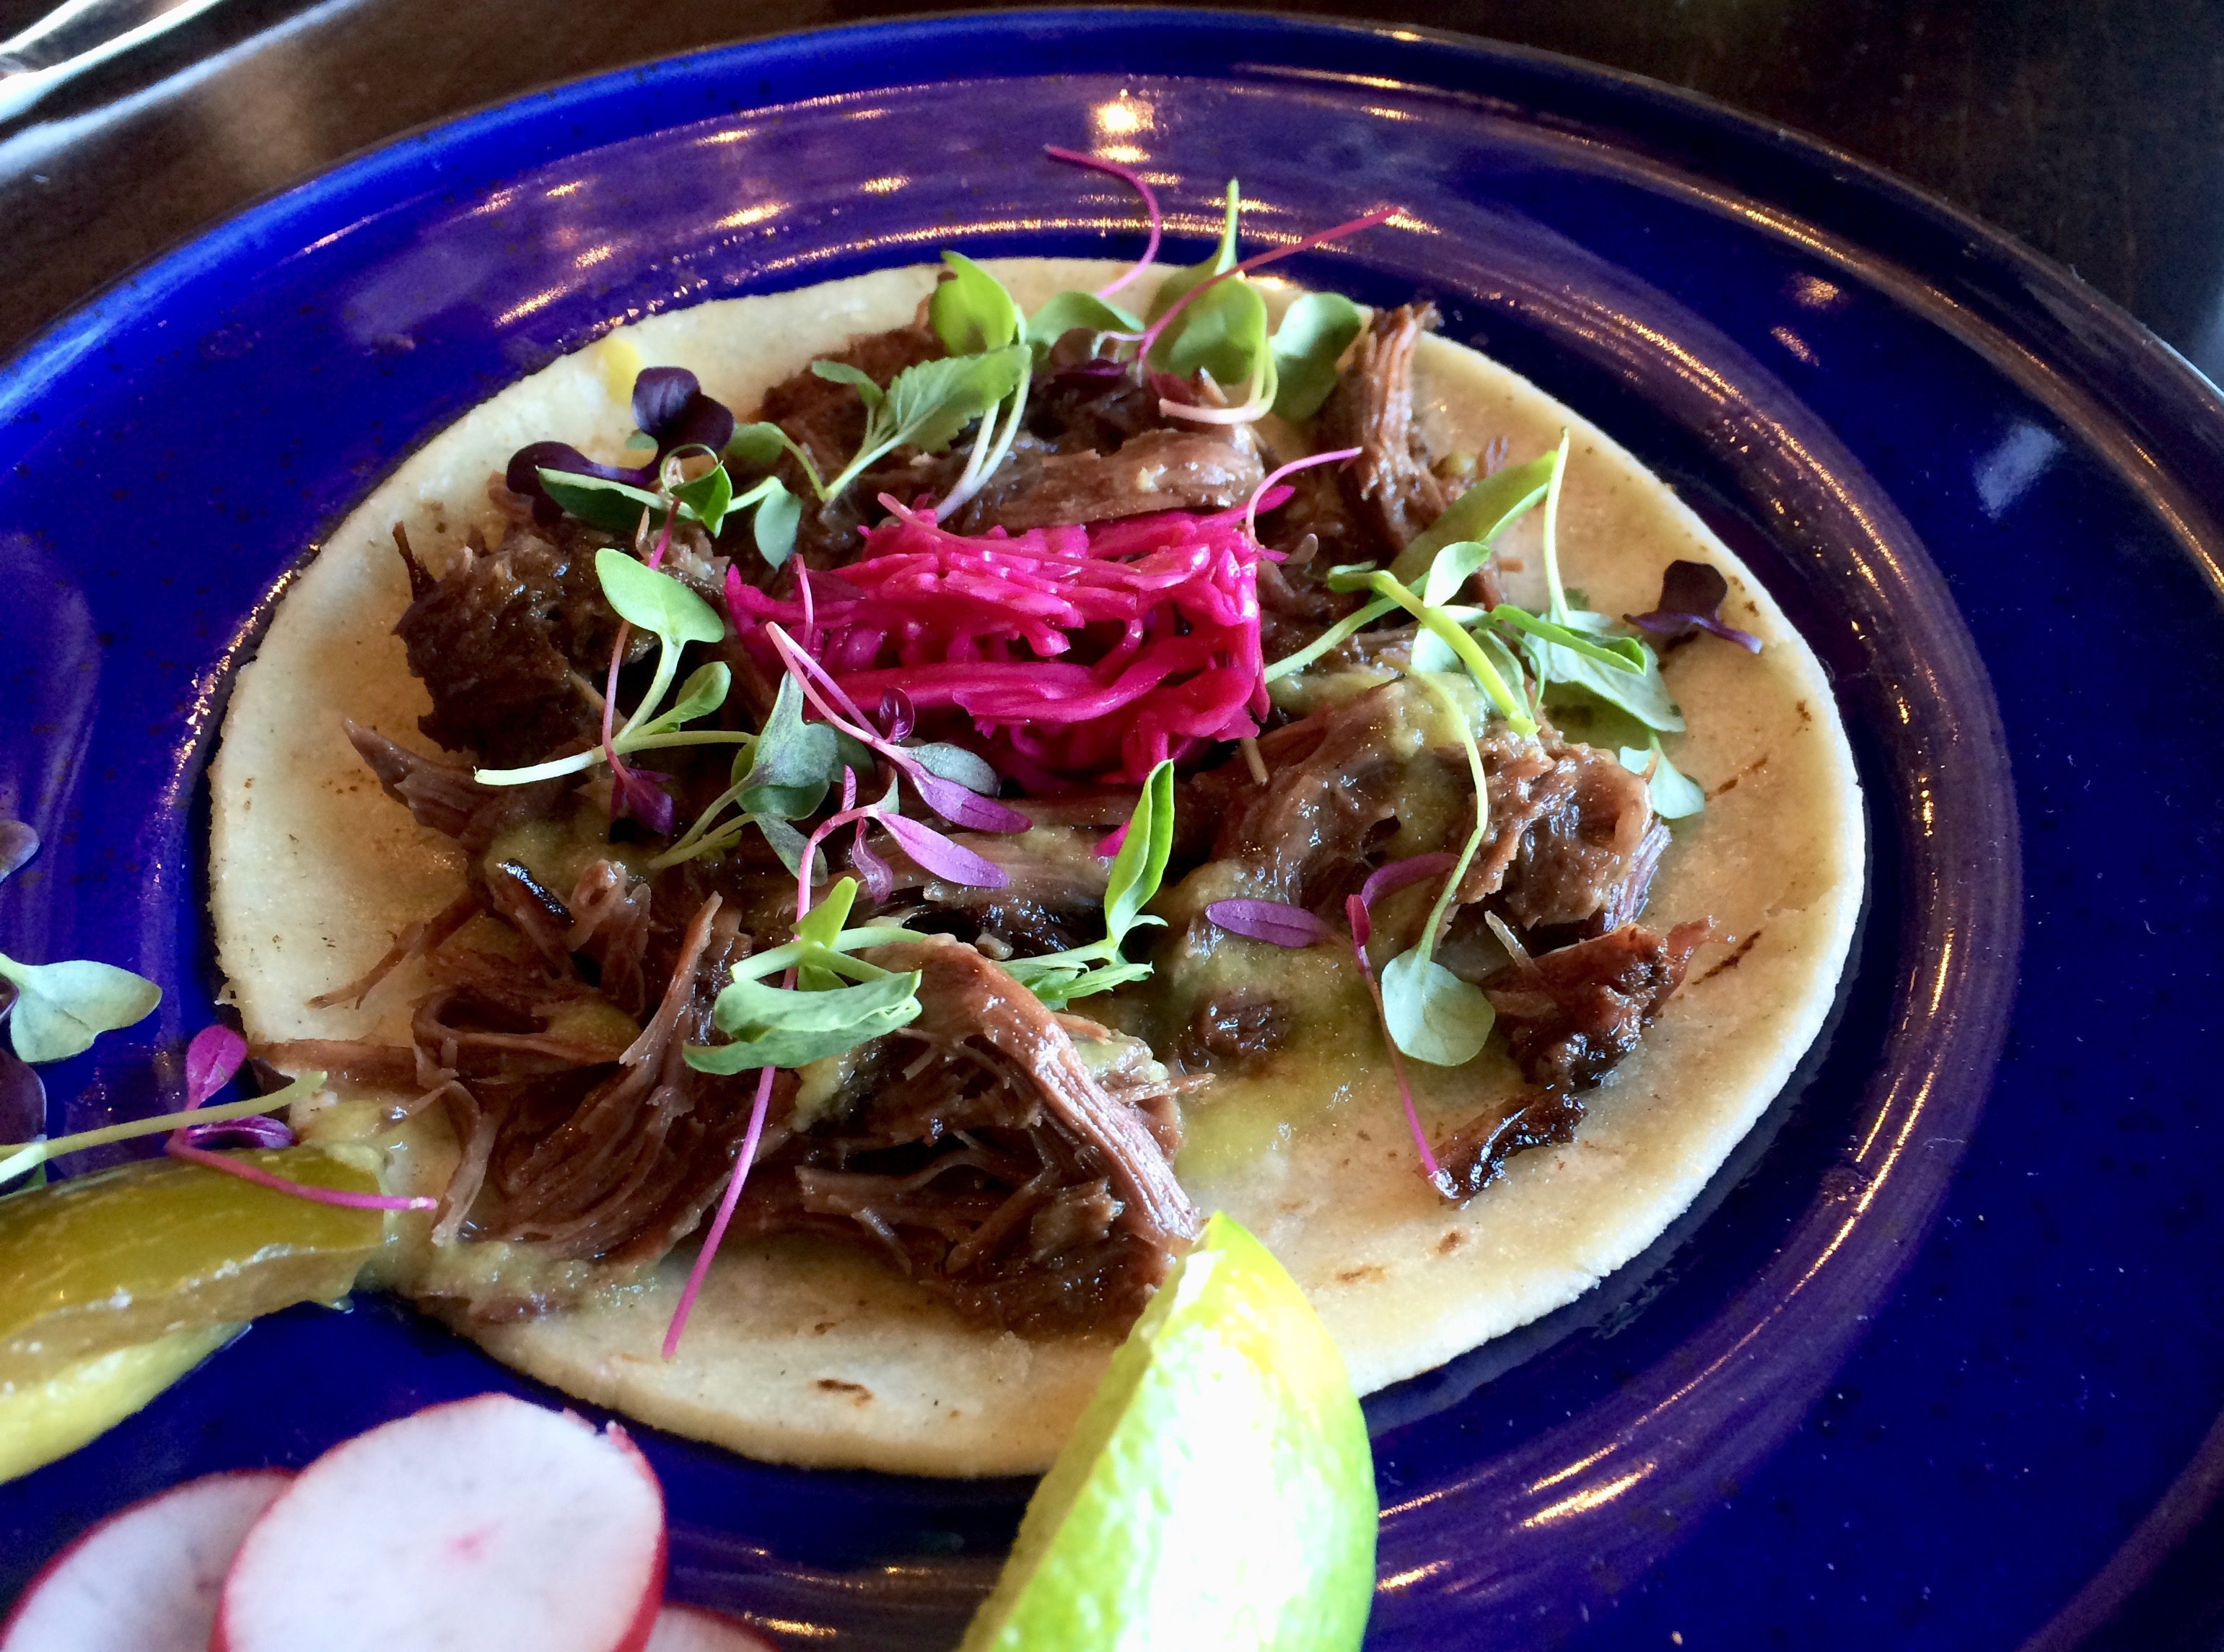 Beef Cheek Tacos at Ceremony in Studio City